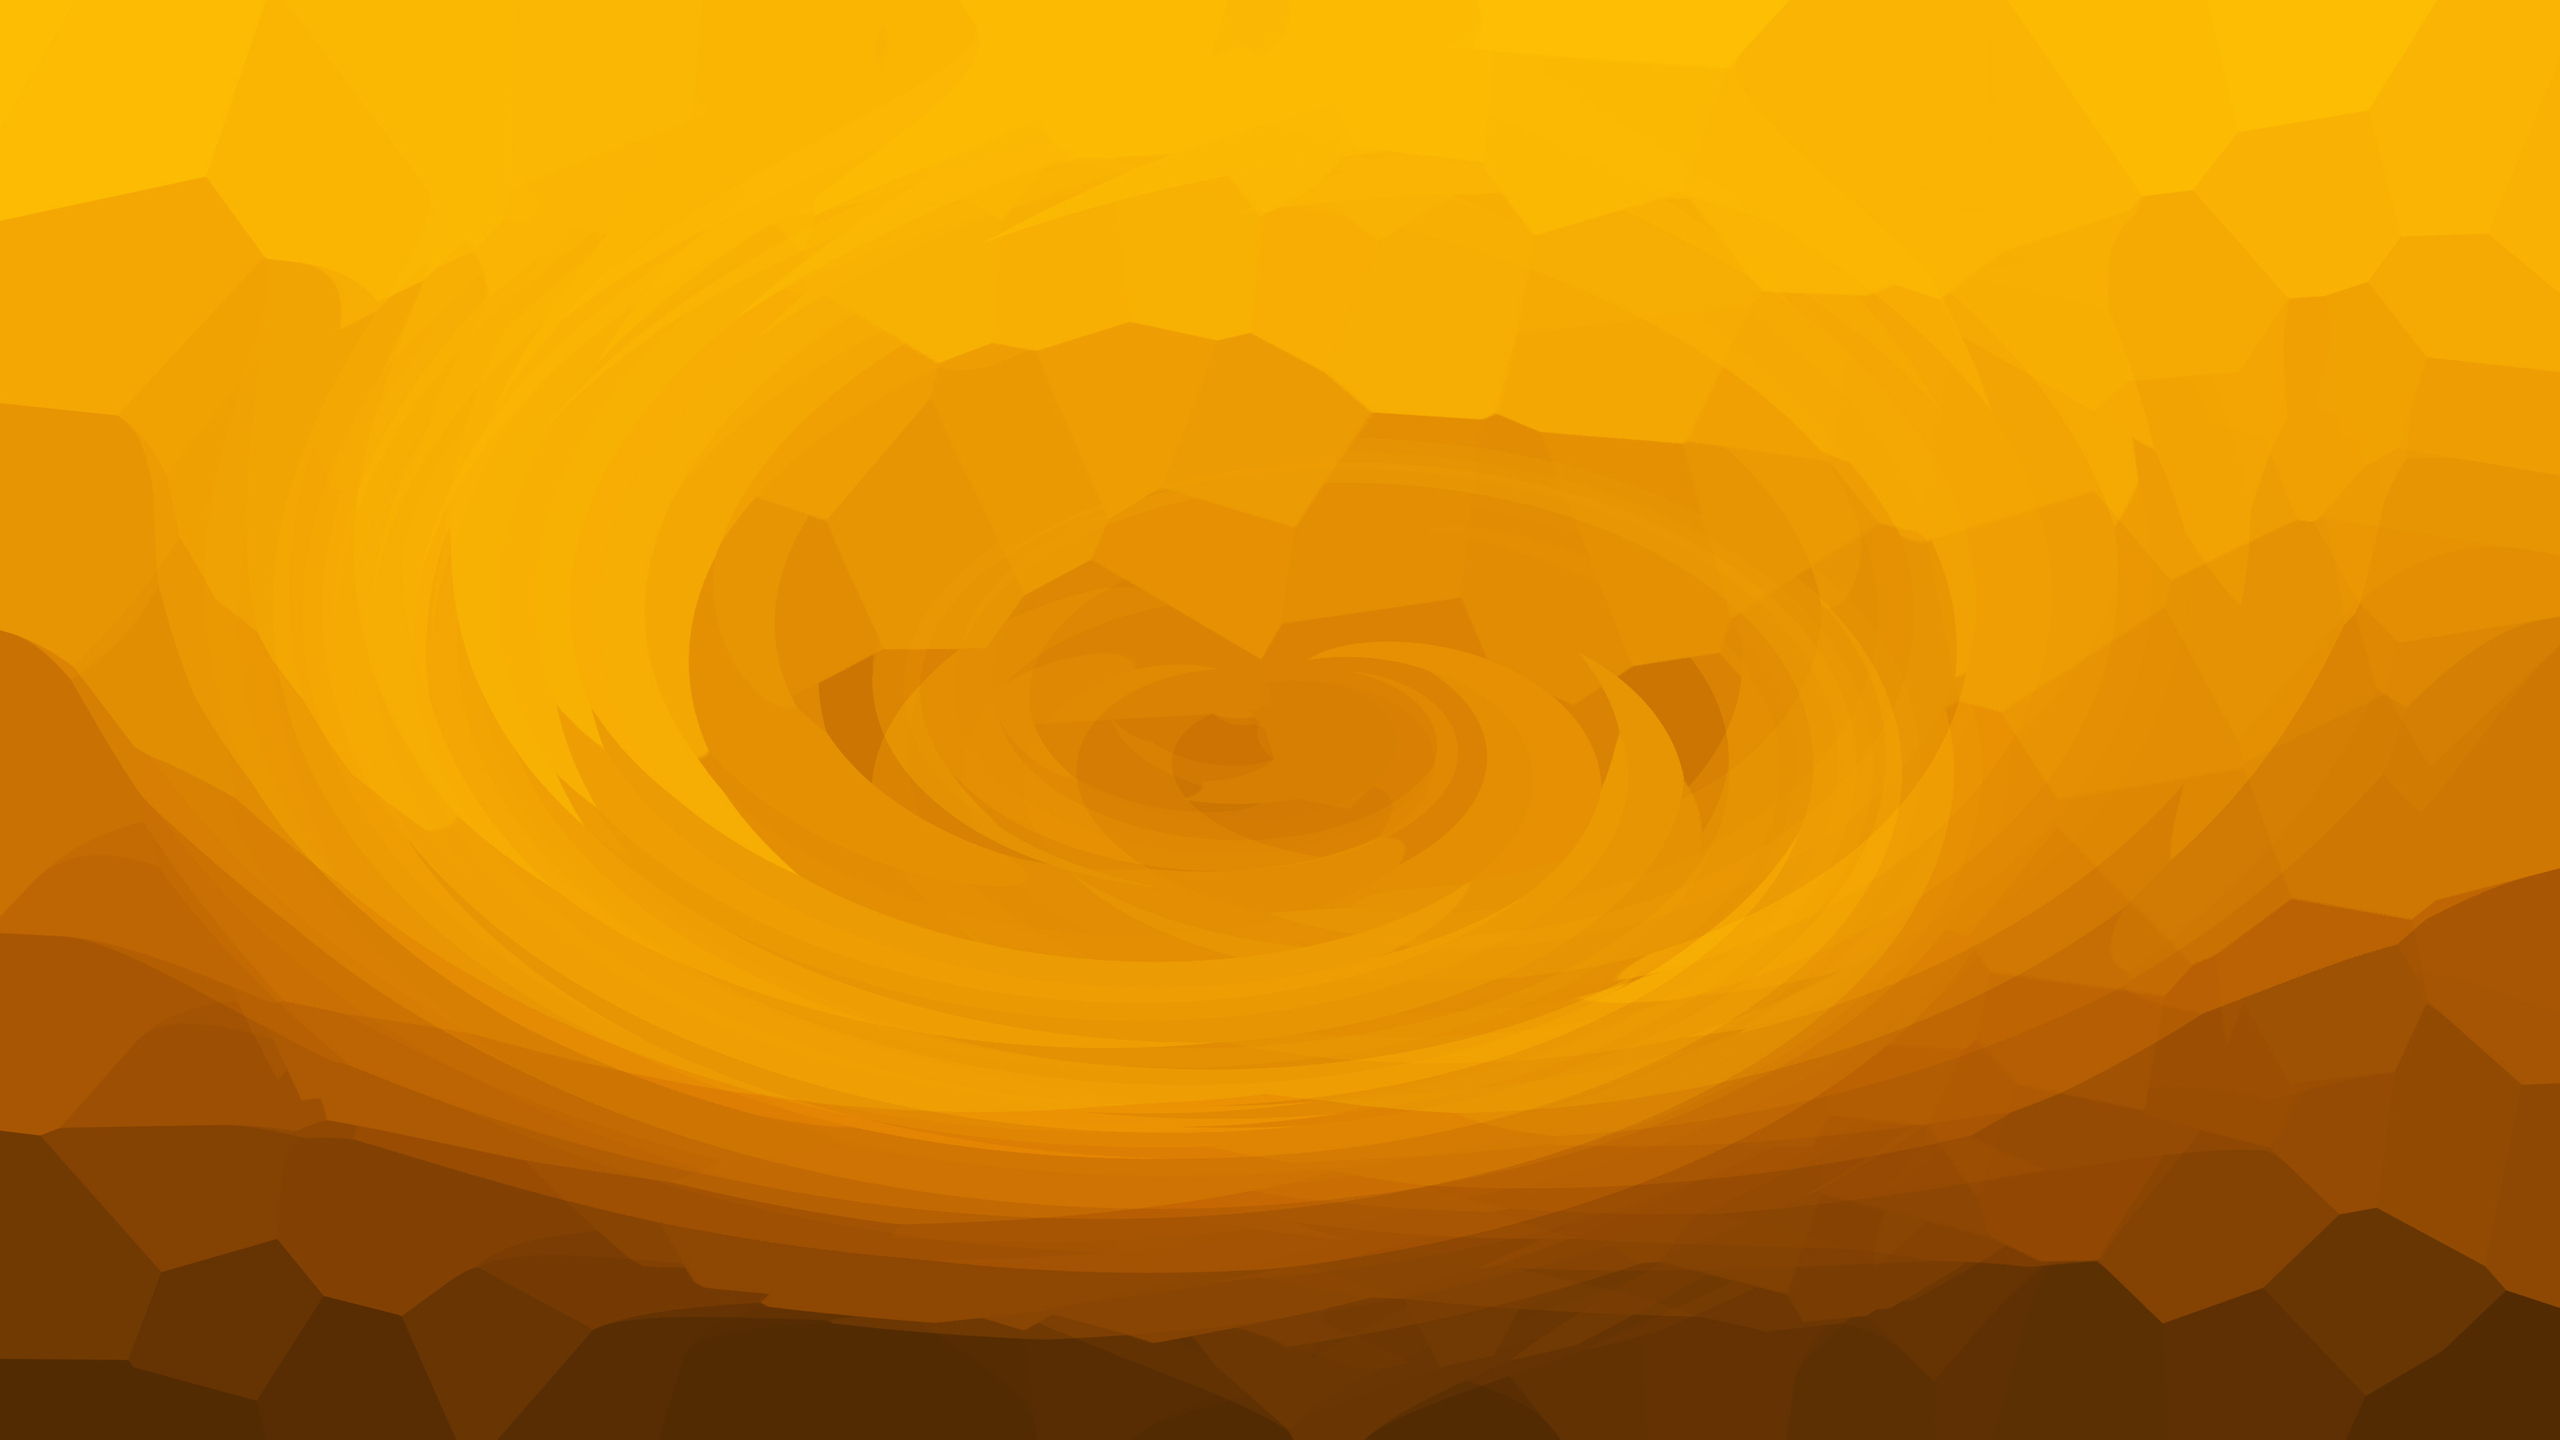 2560x1440 Abstract Yellow Simple Background 4k 1440P